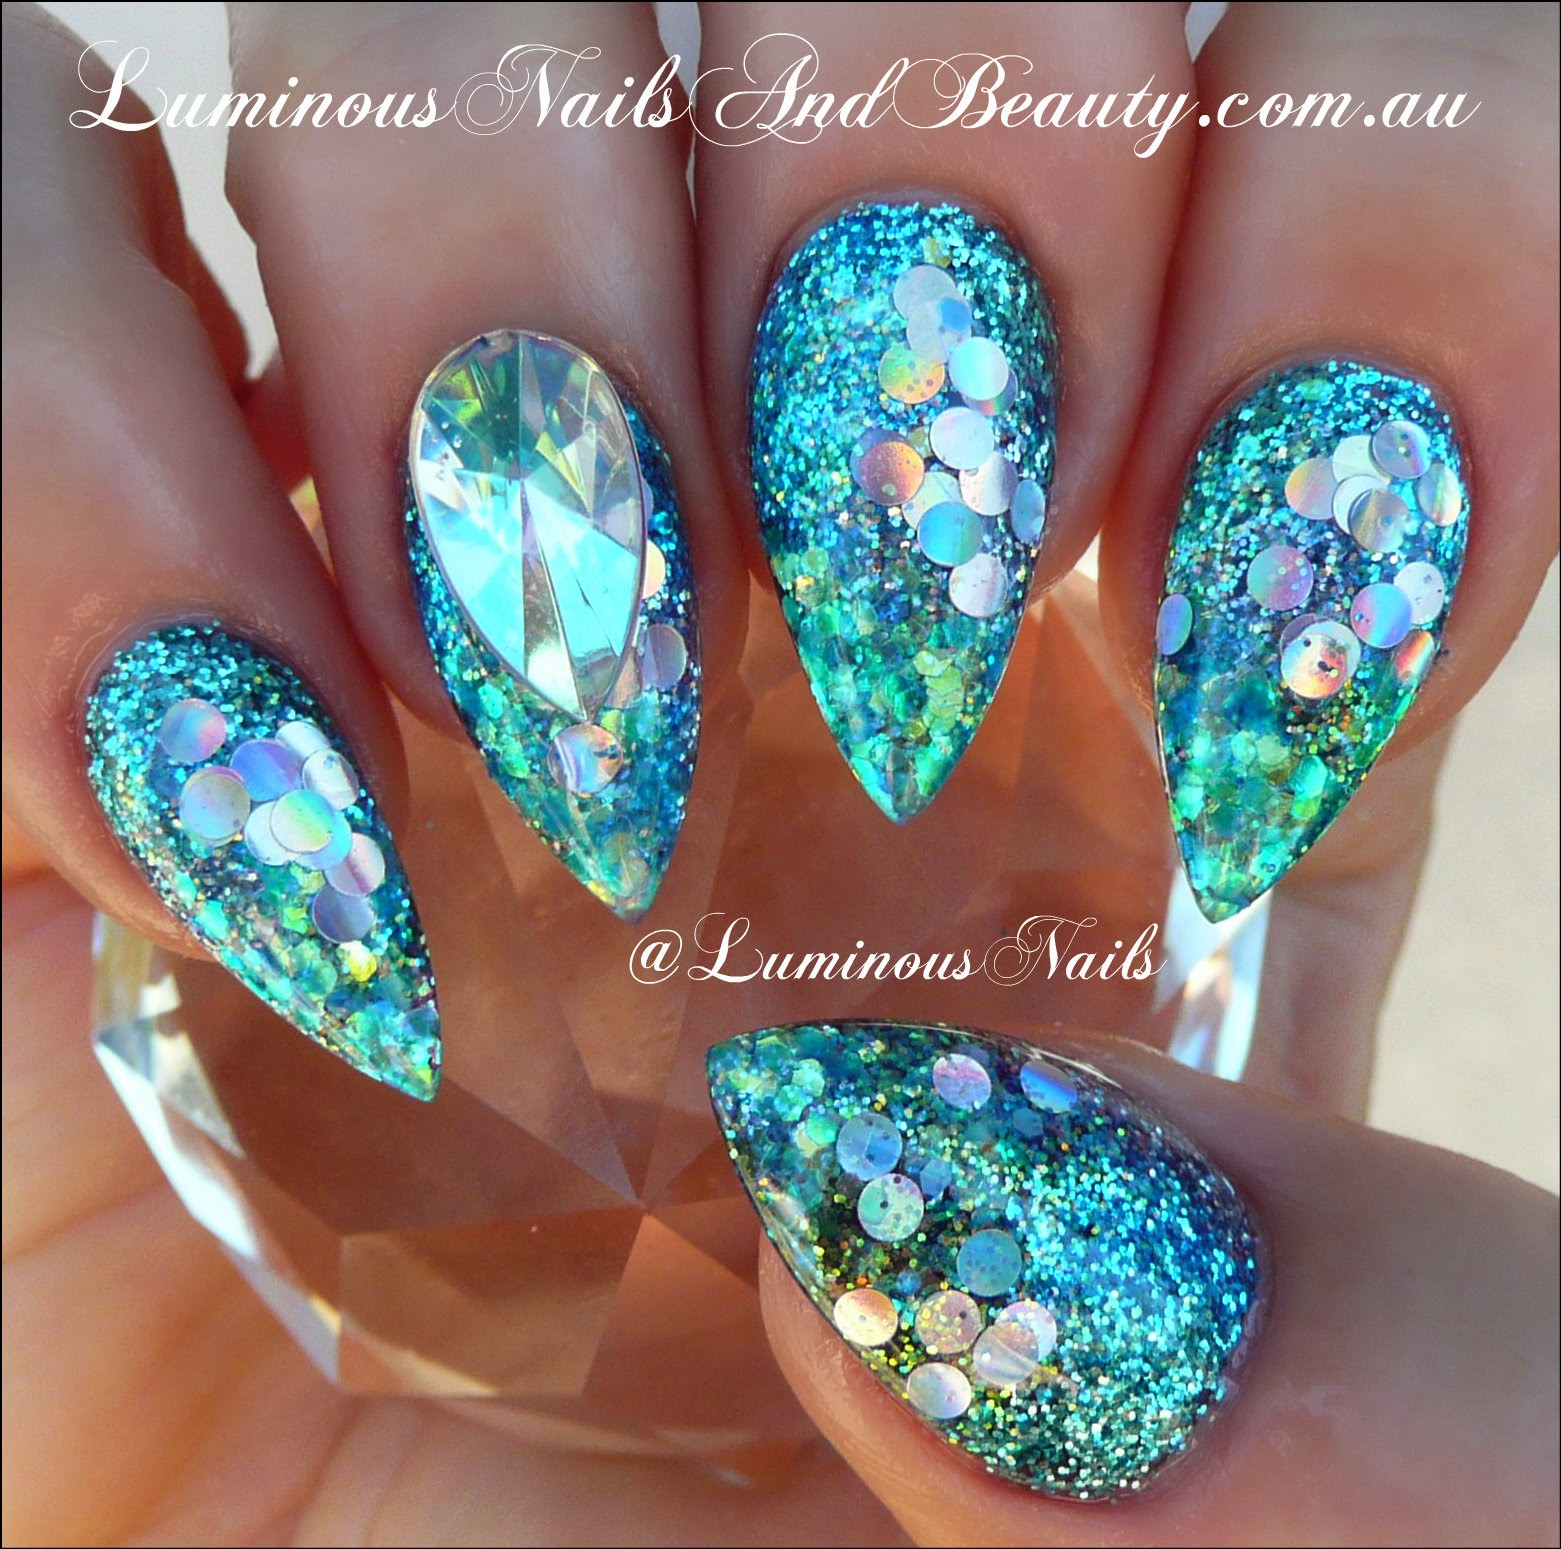 luminous nails: glittery blue acrylic nails